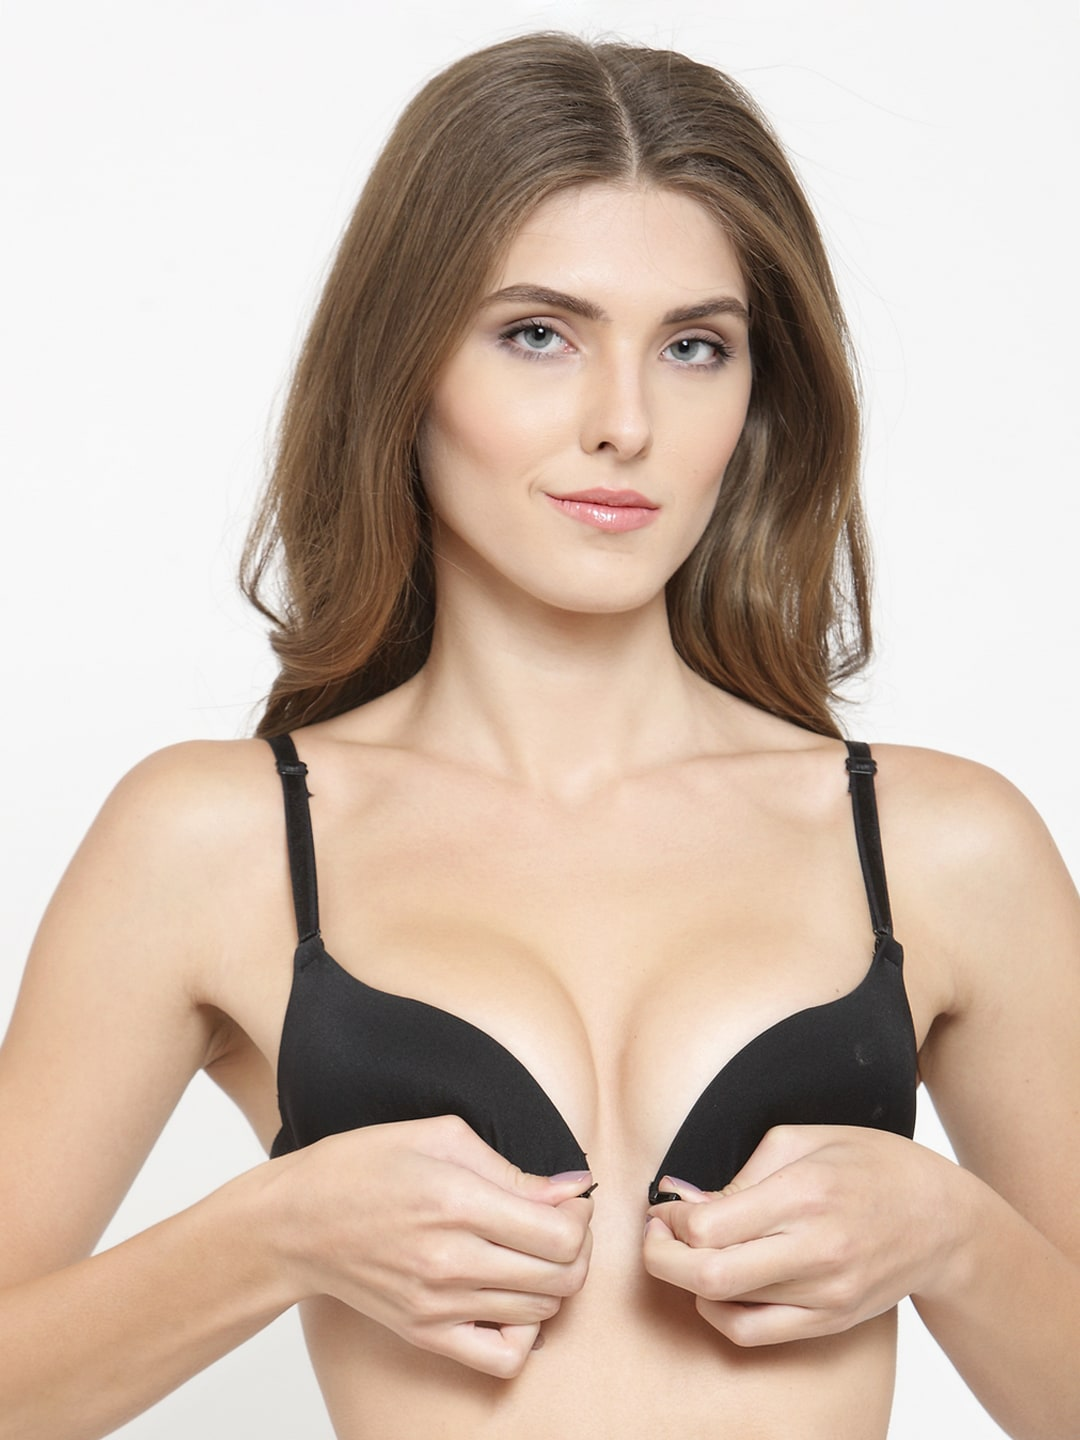 ce35d07ac3ba8 Padded Push Up Bra - Buy Padded Push Up Bra Online in India